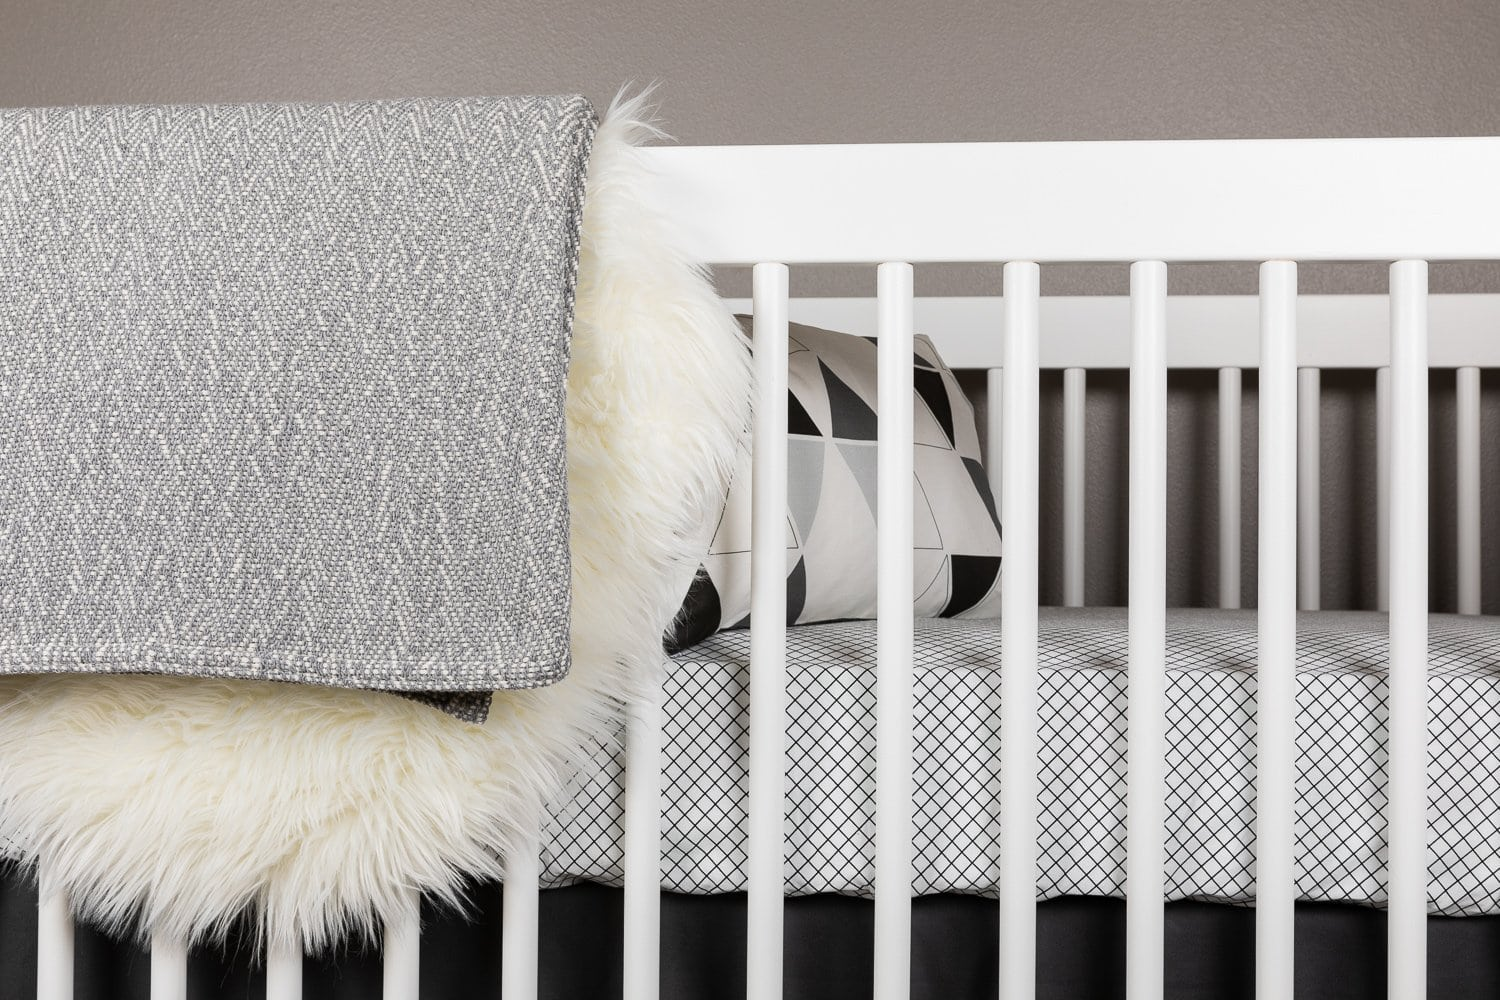 Grid Crib Bedding Set Black and White-Crib Bedding Set-Jack and Jill Boutique